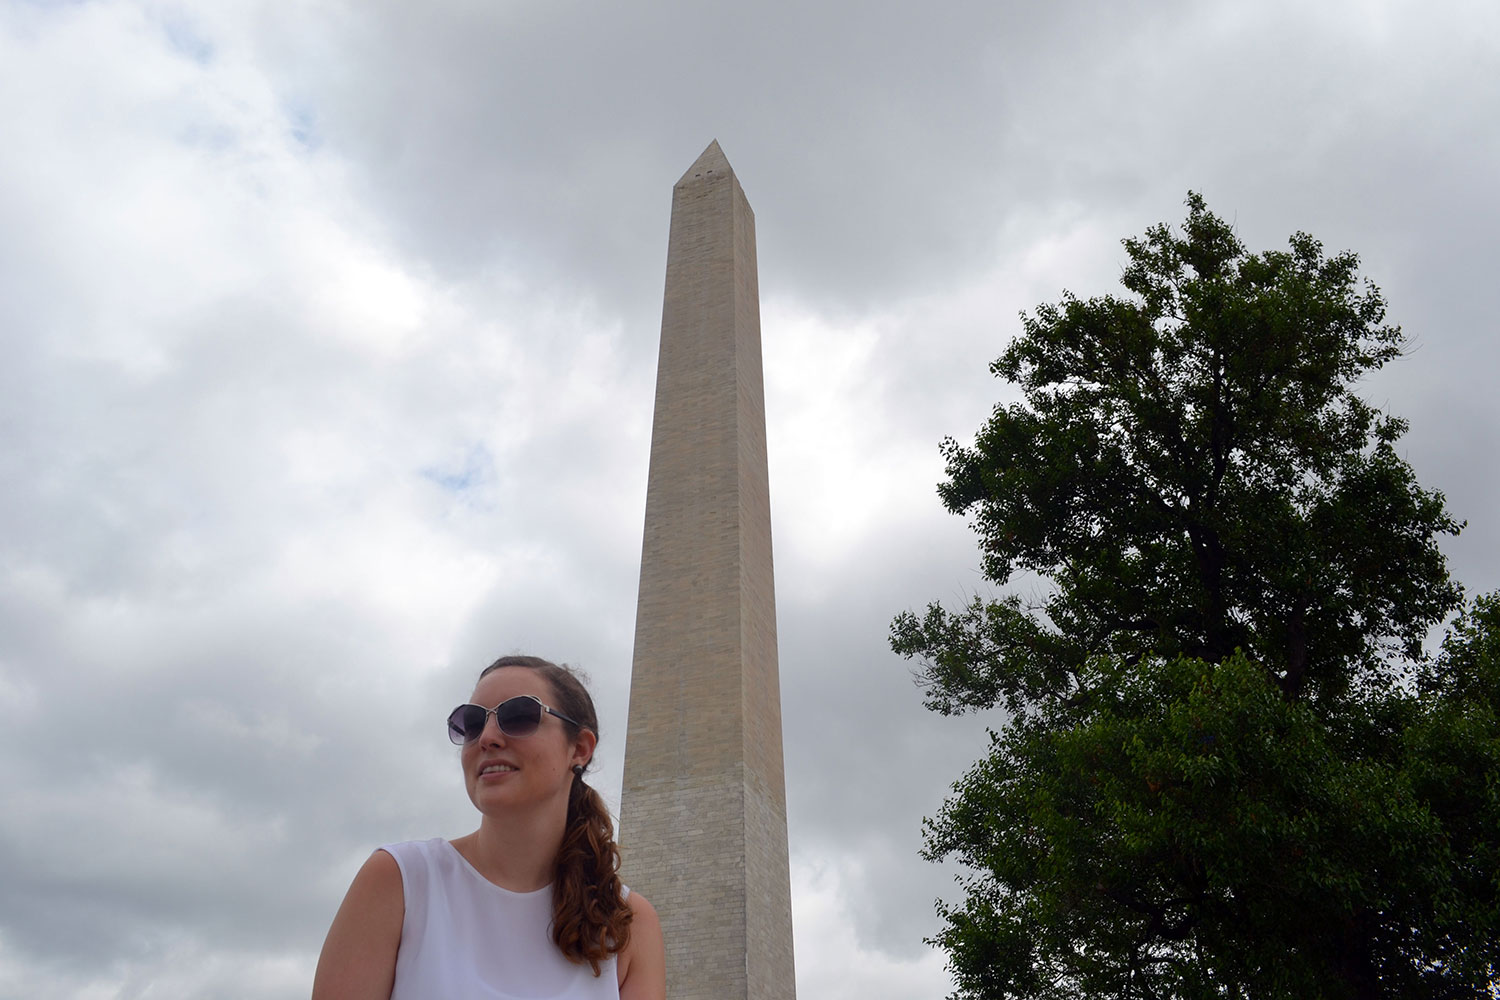 Travel Diary: Washington, D.C. | Deel 2: Hotel, Bus etc. - Washington 1